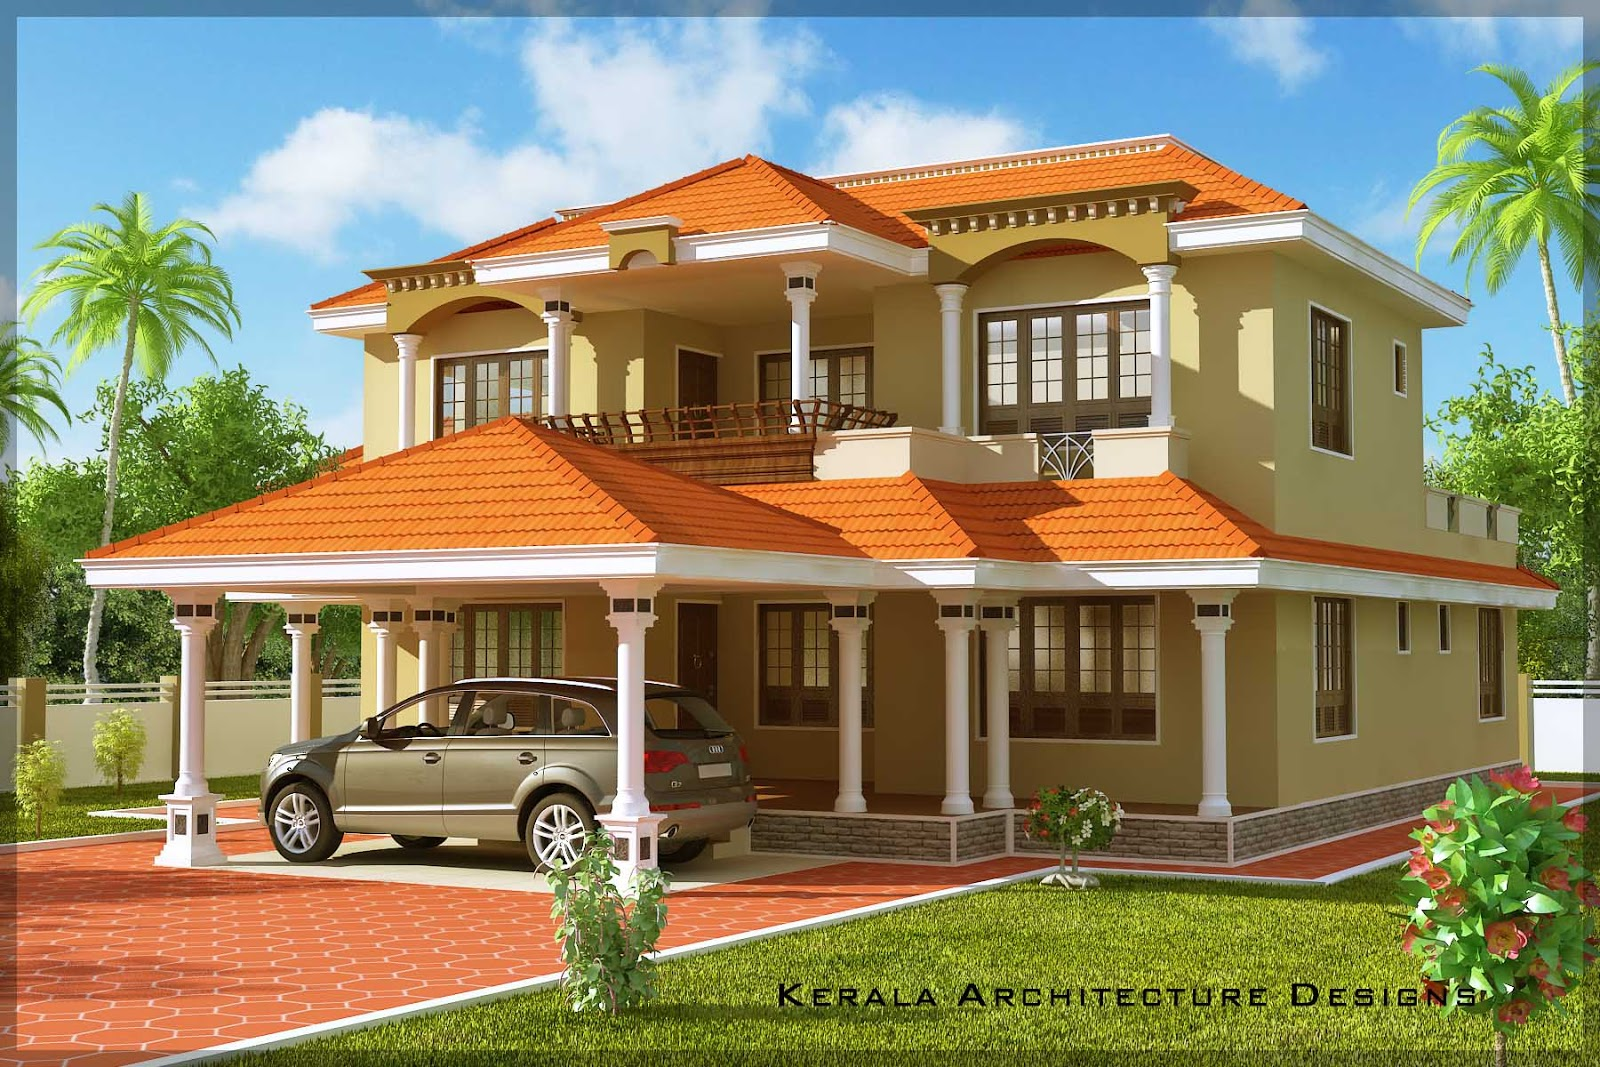 Beautiful Traditional Kerala House Plan Architecture Kerala